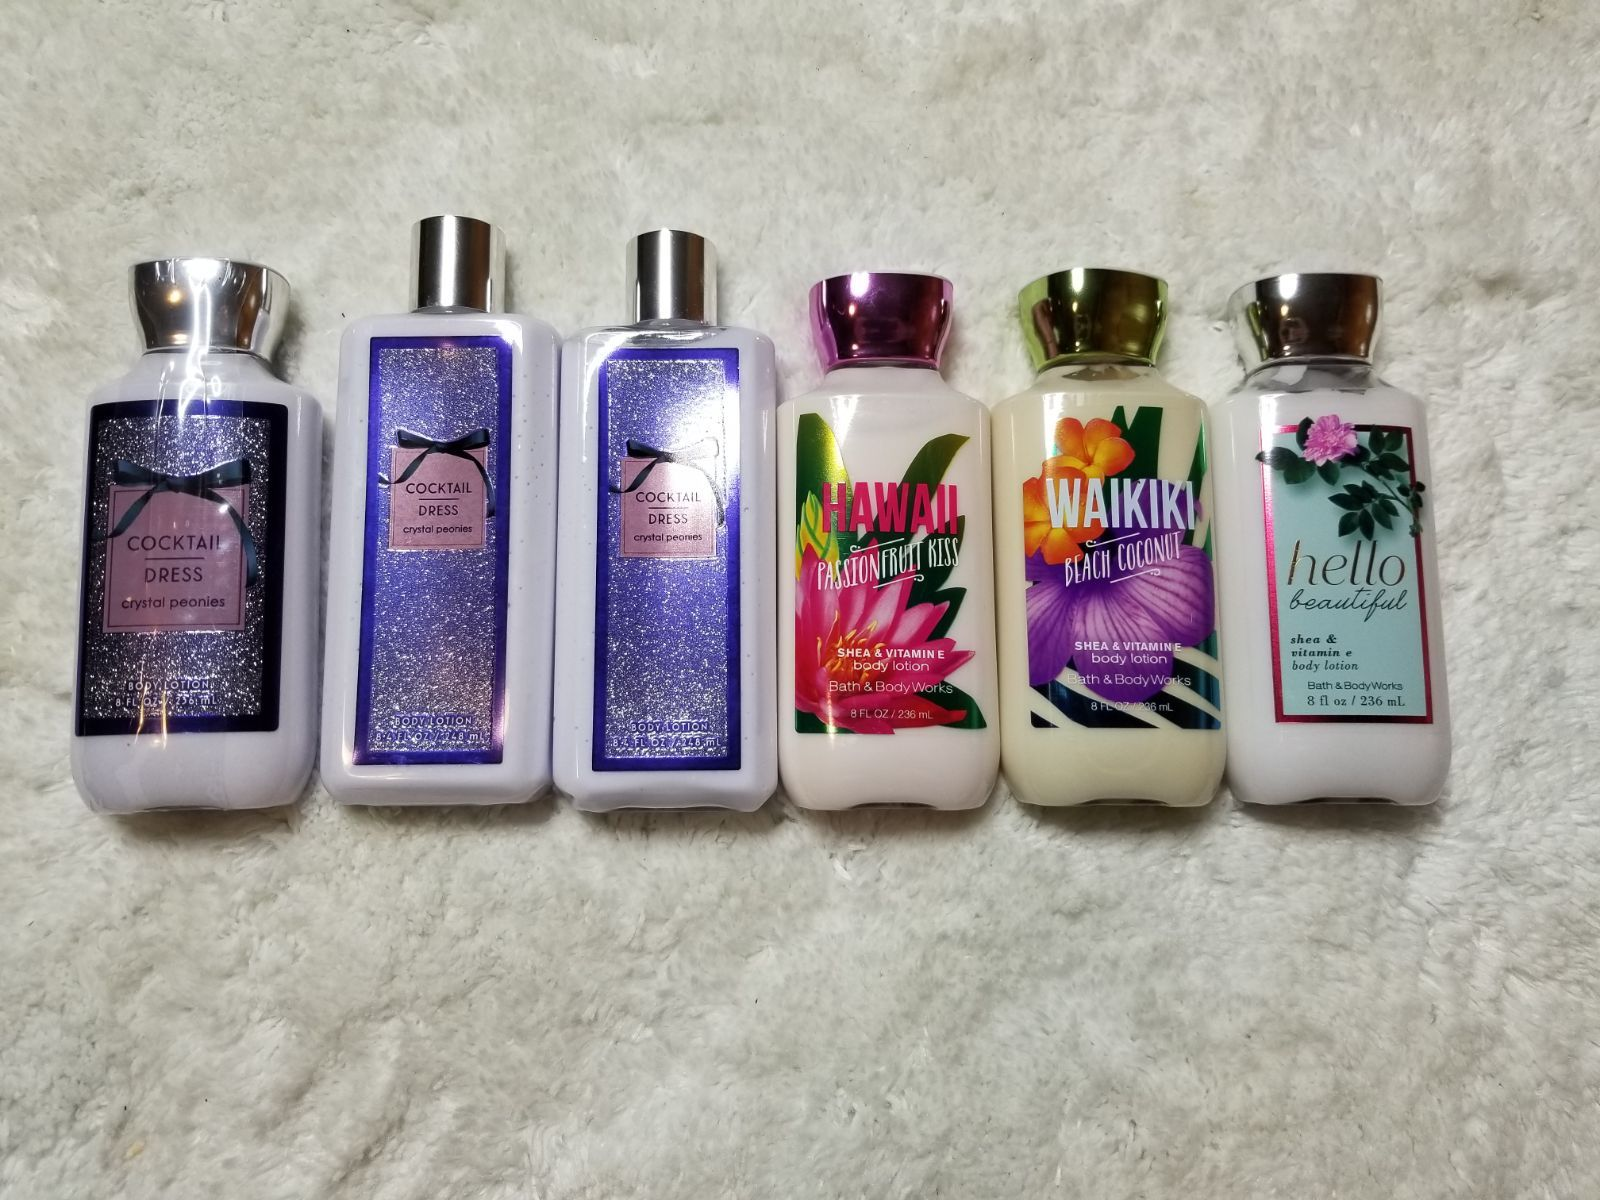 6 Bath And Bodyworks Lotions Take Everything For 50 Includes 3 Cocktail Dress 1 Hawaii Passionfruit Kis Bath And Body Works Bath And Bodyworks Bath And Body [ 1200 x 1600 Pixel ]